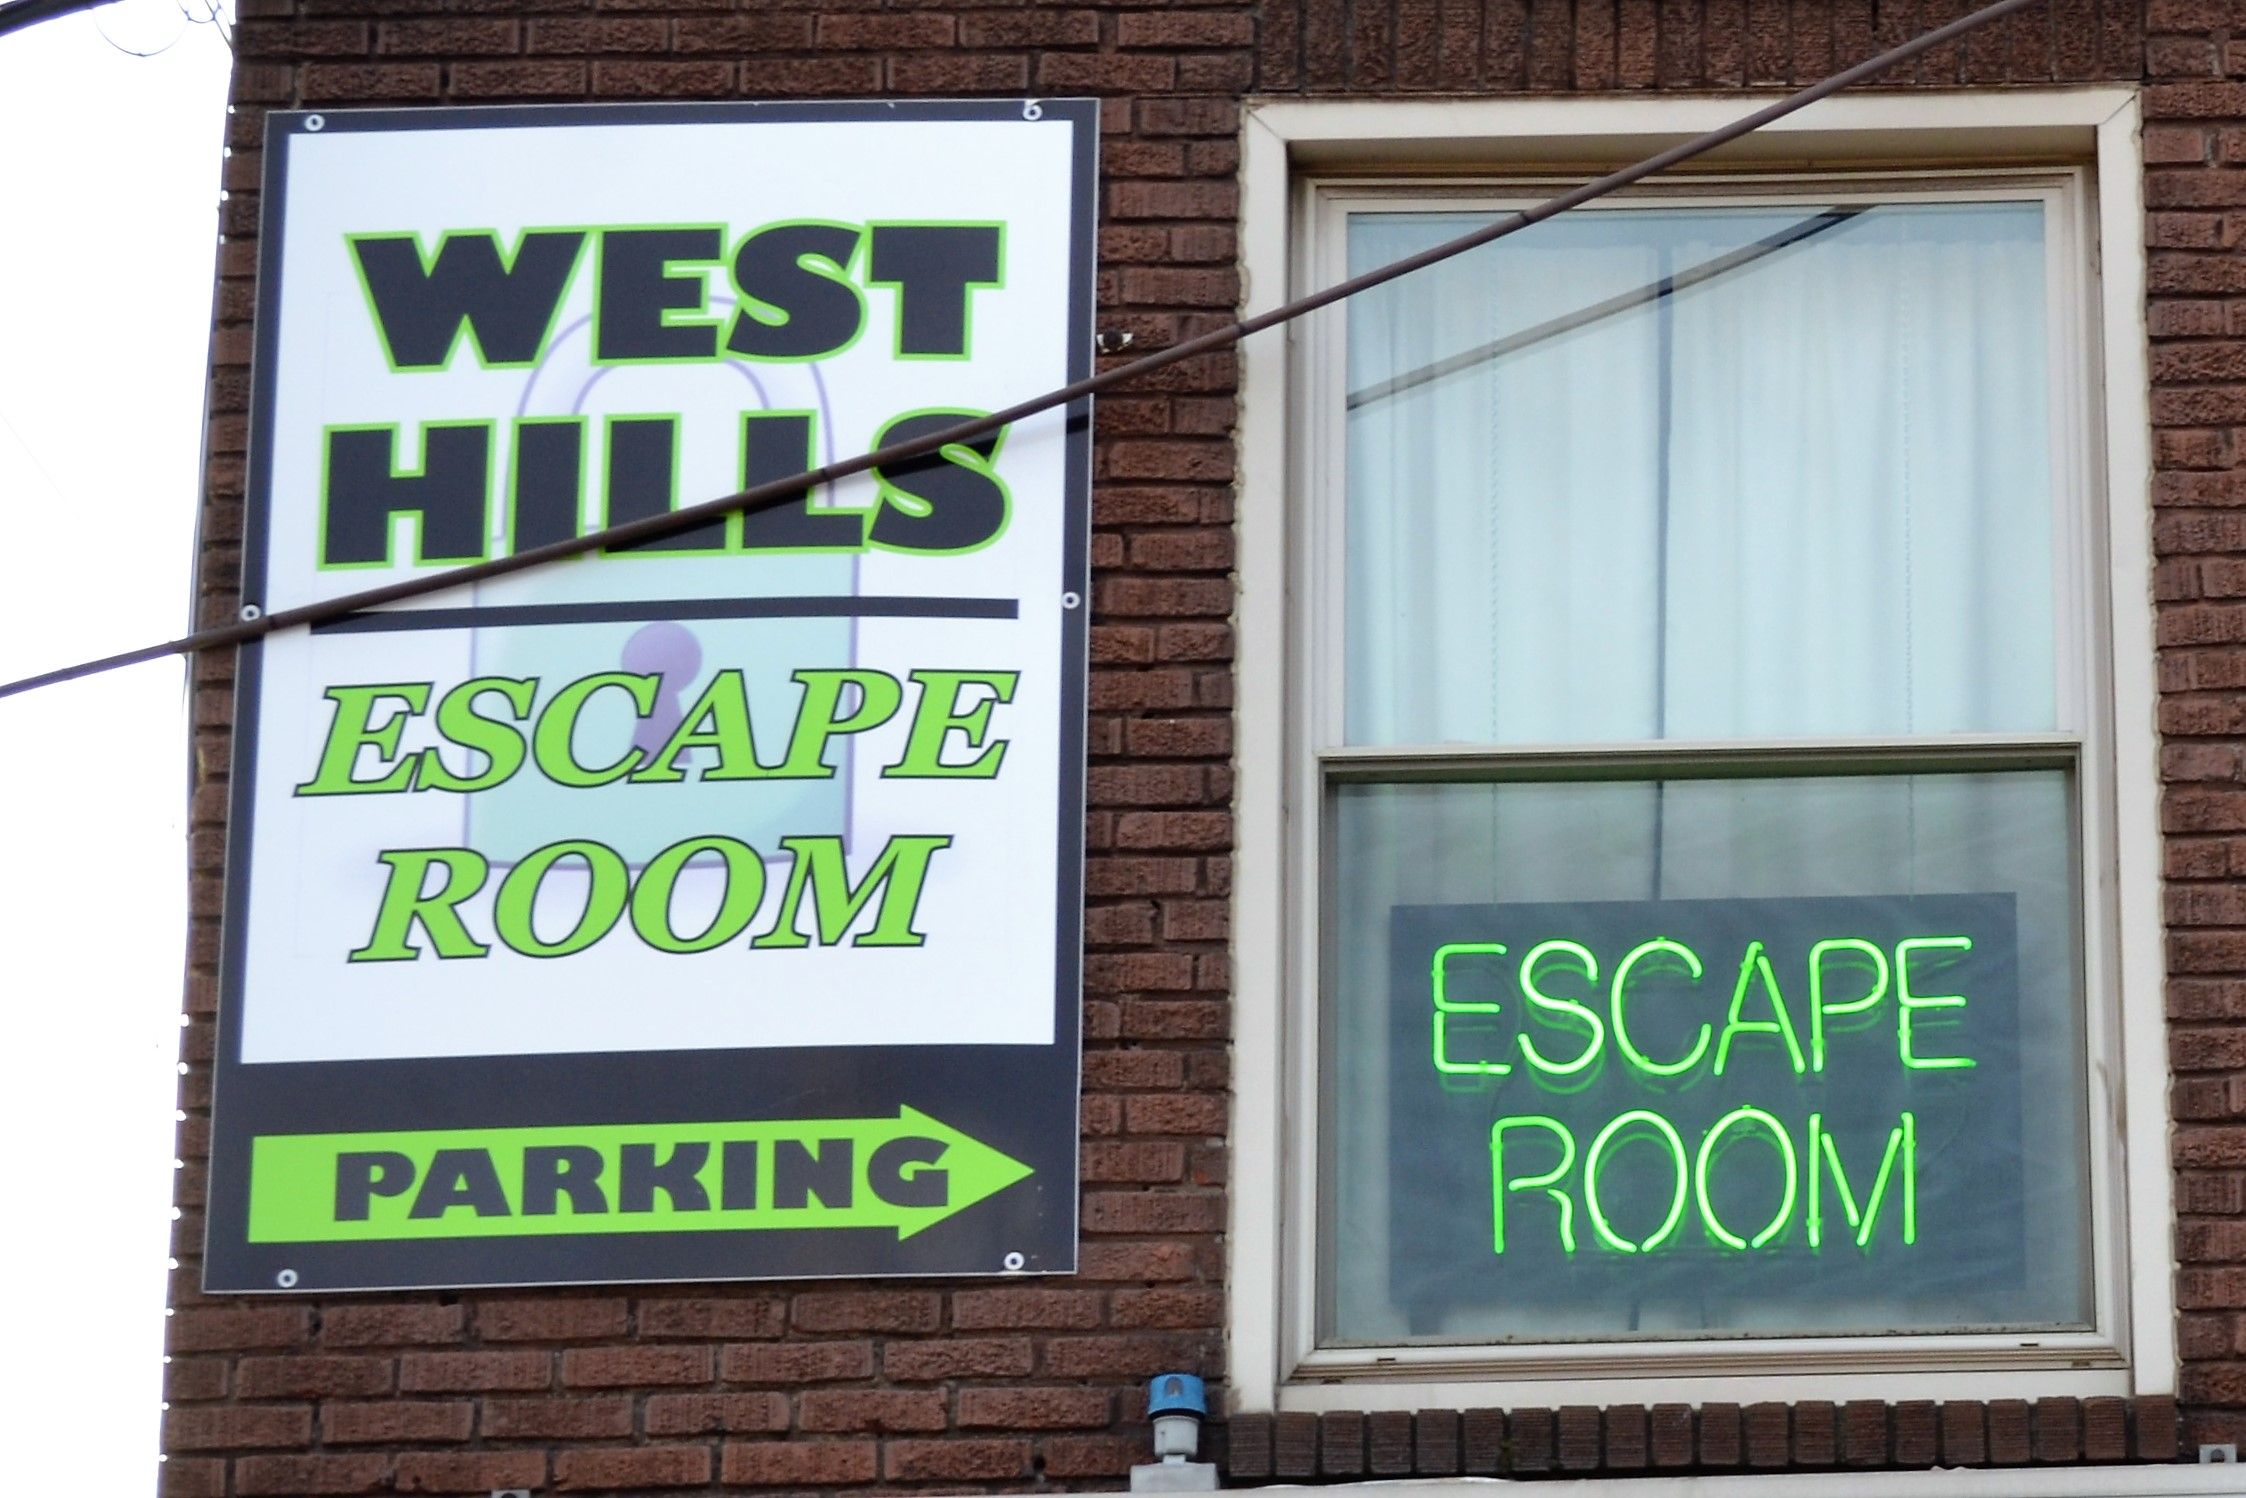 West Hills Escape Room - 845 4th Ave, (412) 329-8868